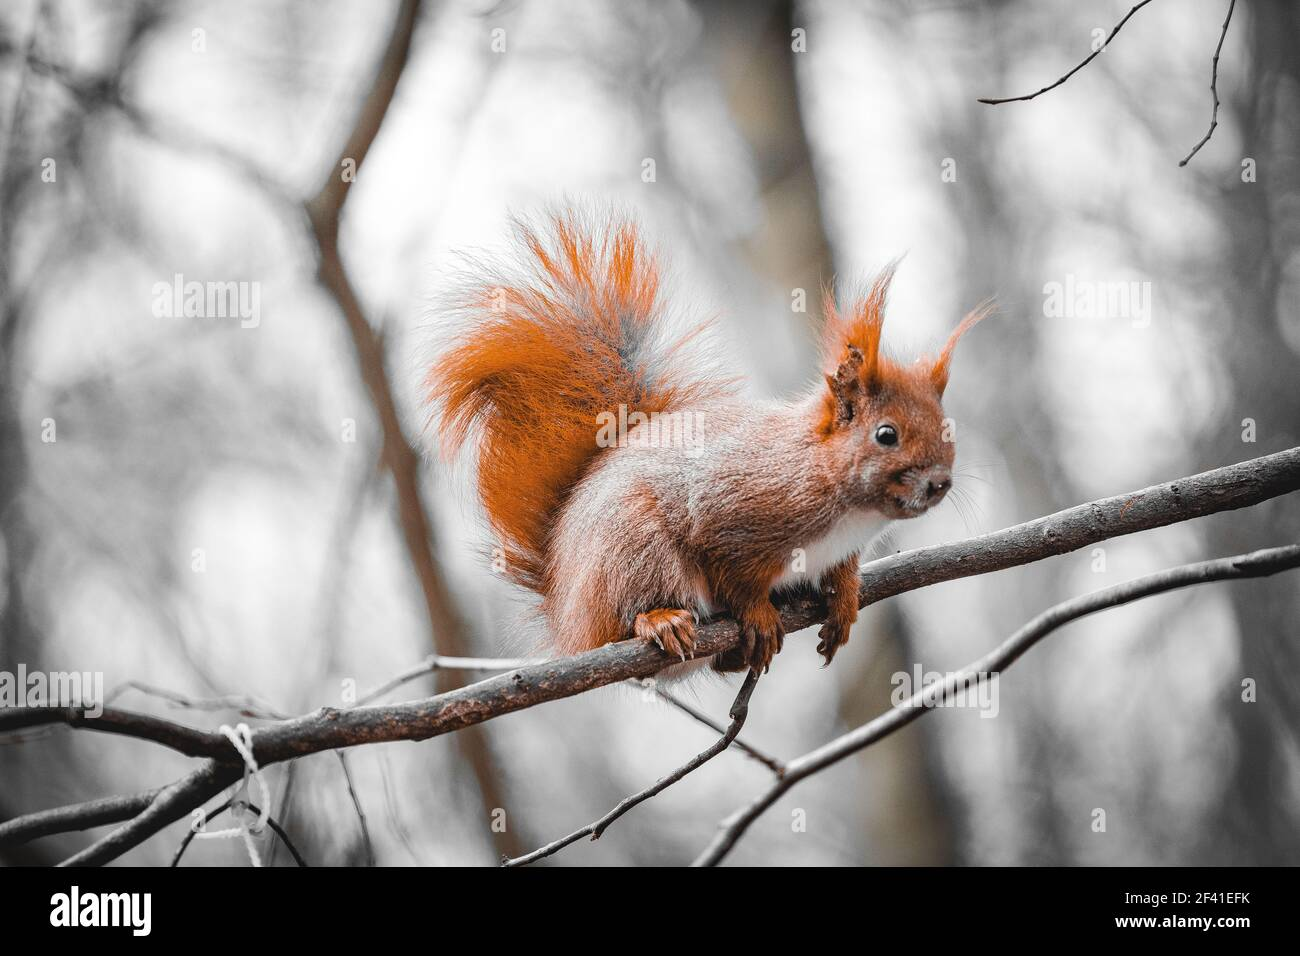 red squirrel on a tree in a grey ambient Stock Photo